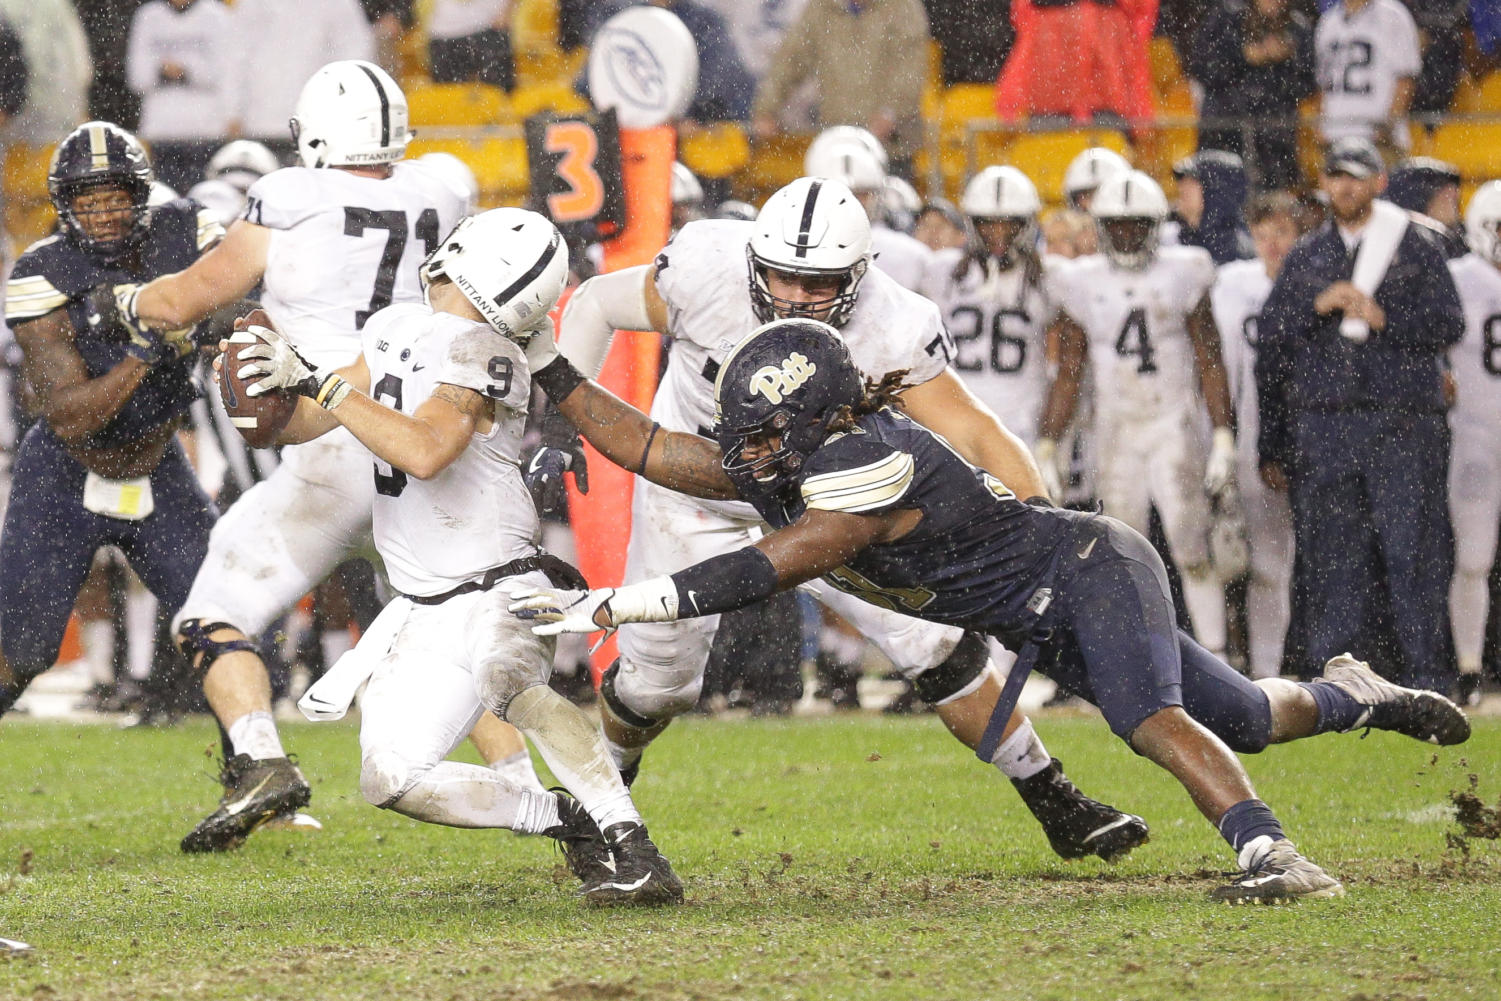 Redshirt sophomore defensive lineman Patrick Jones II (91) makes an illegal face-mask grab while attempting to sack Penn State senior quarterback Trace McSorley (9).